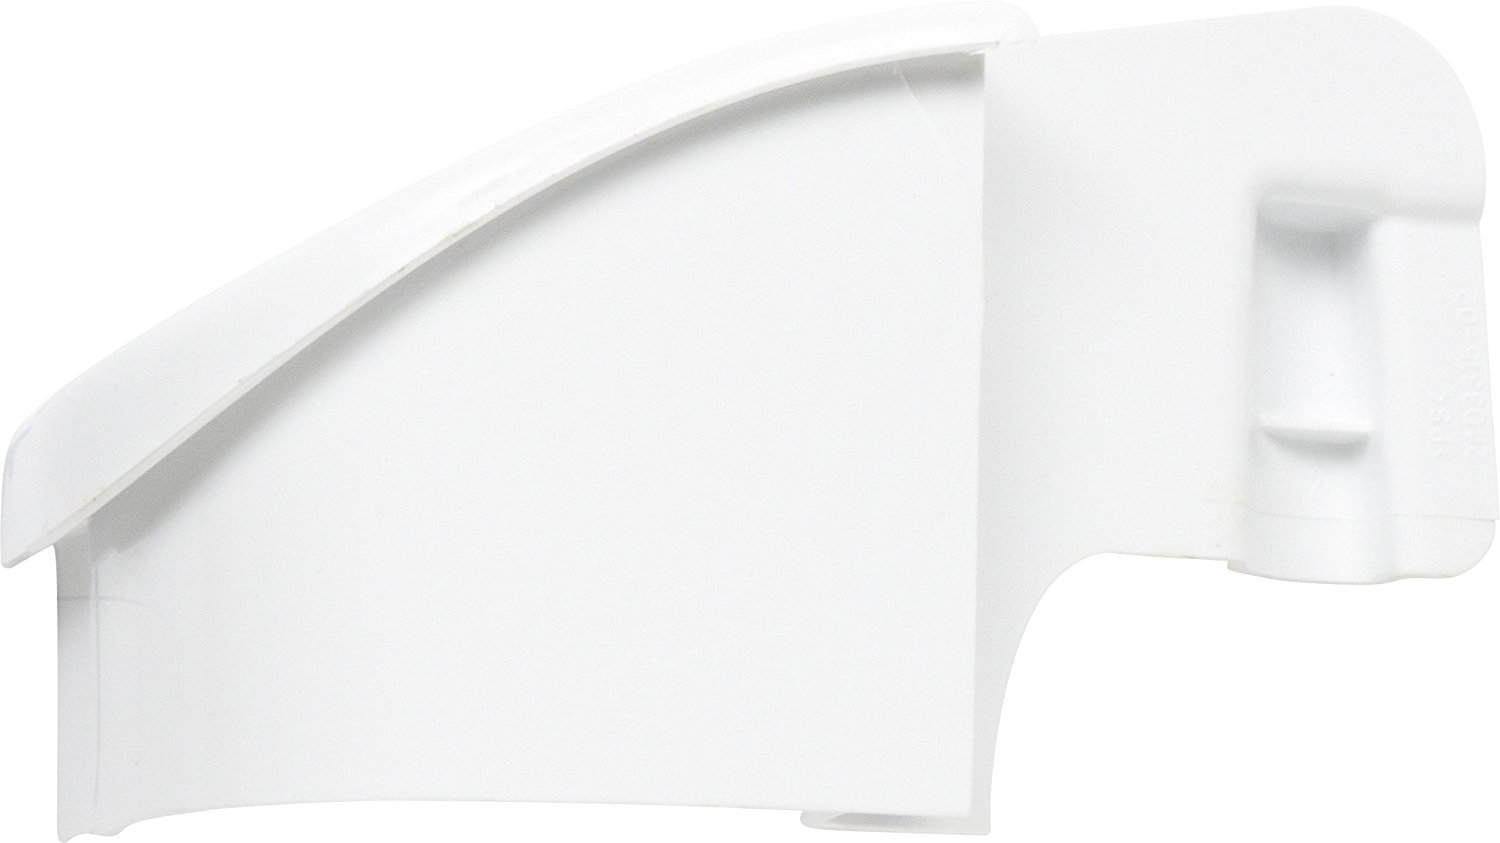 240331502 Refrigerator Door Shelf End Cap, Right Hand, White Replacement For Frigidaire,Electrolux,Kelvinator, White-Westinghouser